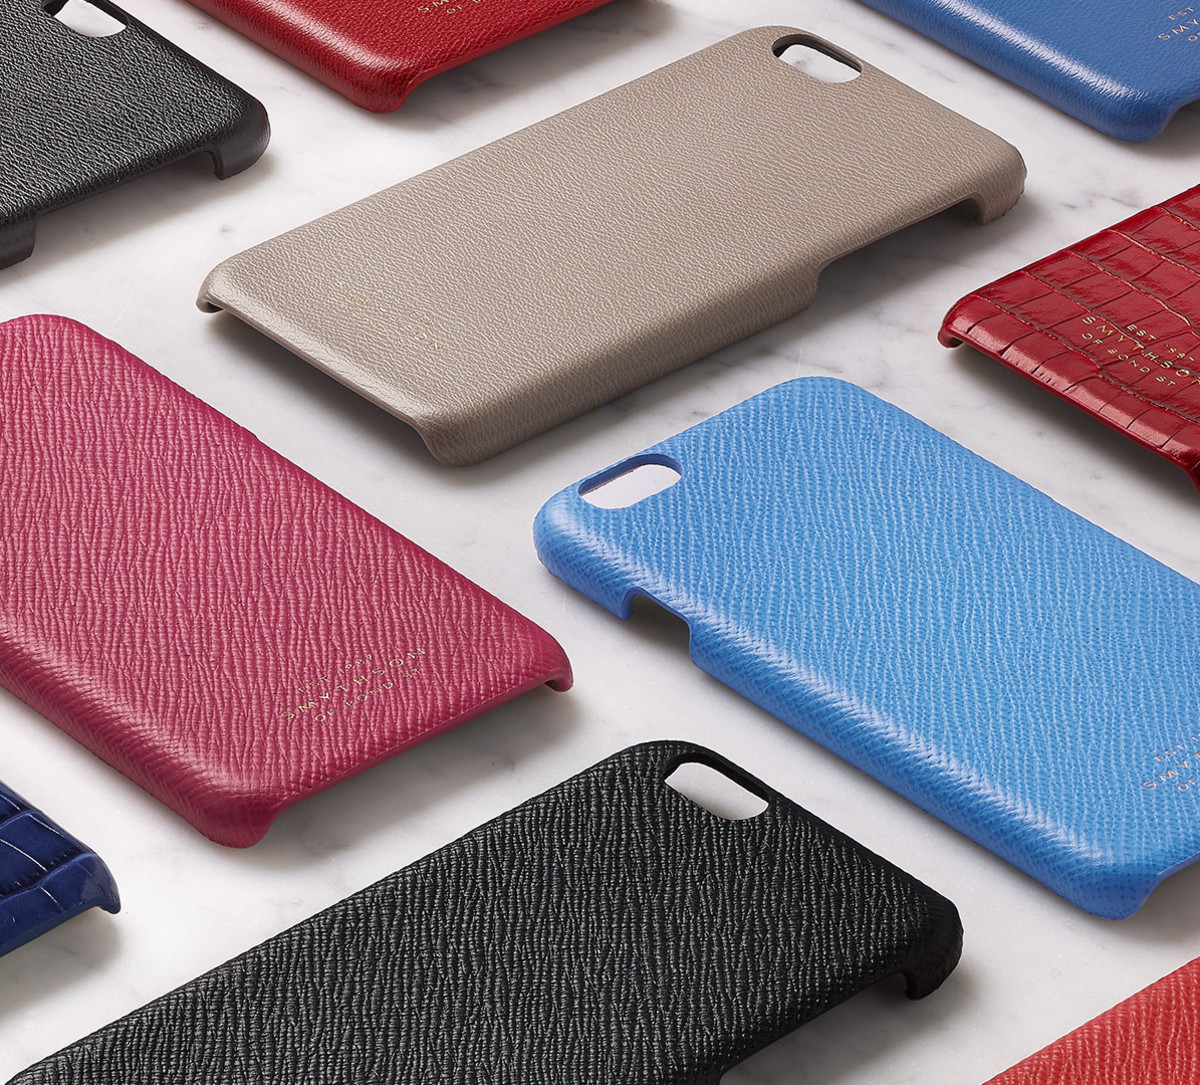 lowest price d615d efc9e Smythson dishes out some low-profile luxury for the iPhone 6 - Acquire